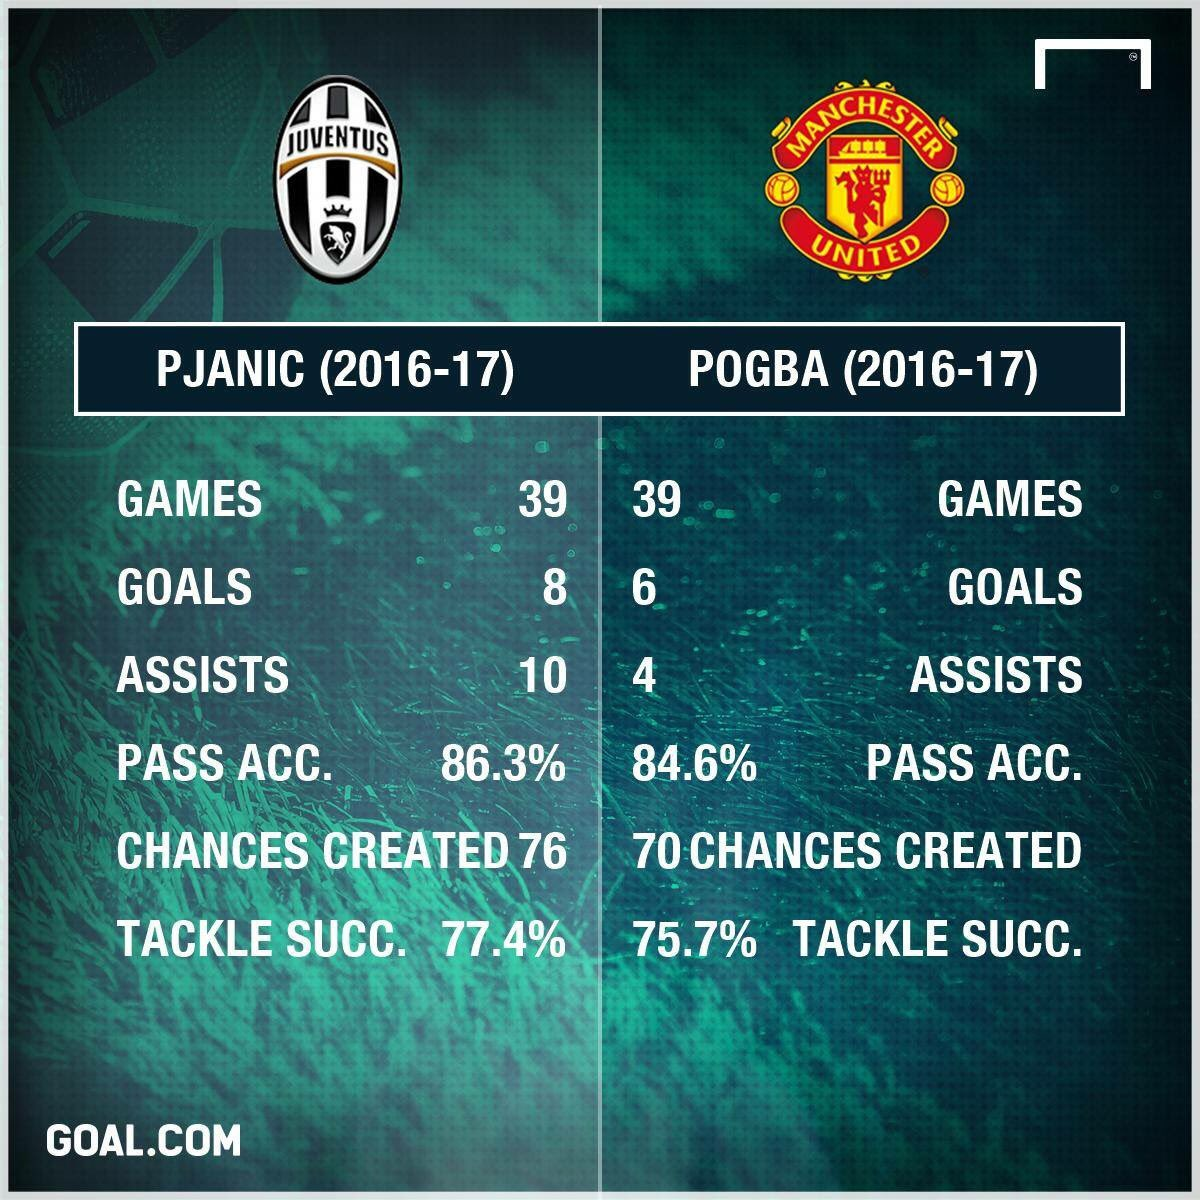 When business is done right #Juventus #pjanic #pogba<br>http://pic.twitter.com/RzZ7OxeJqz